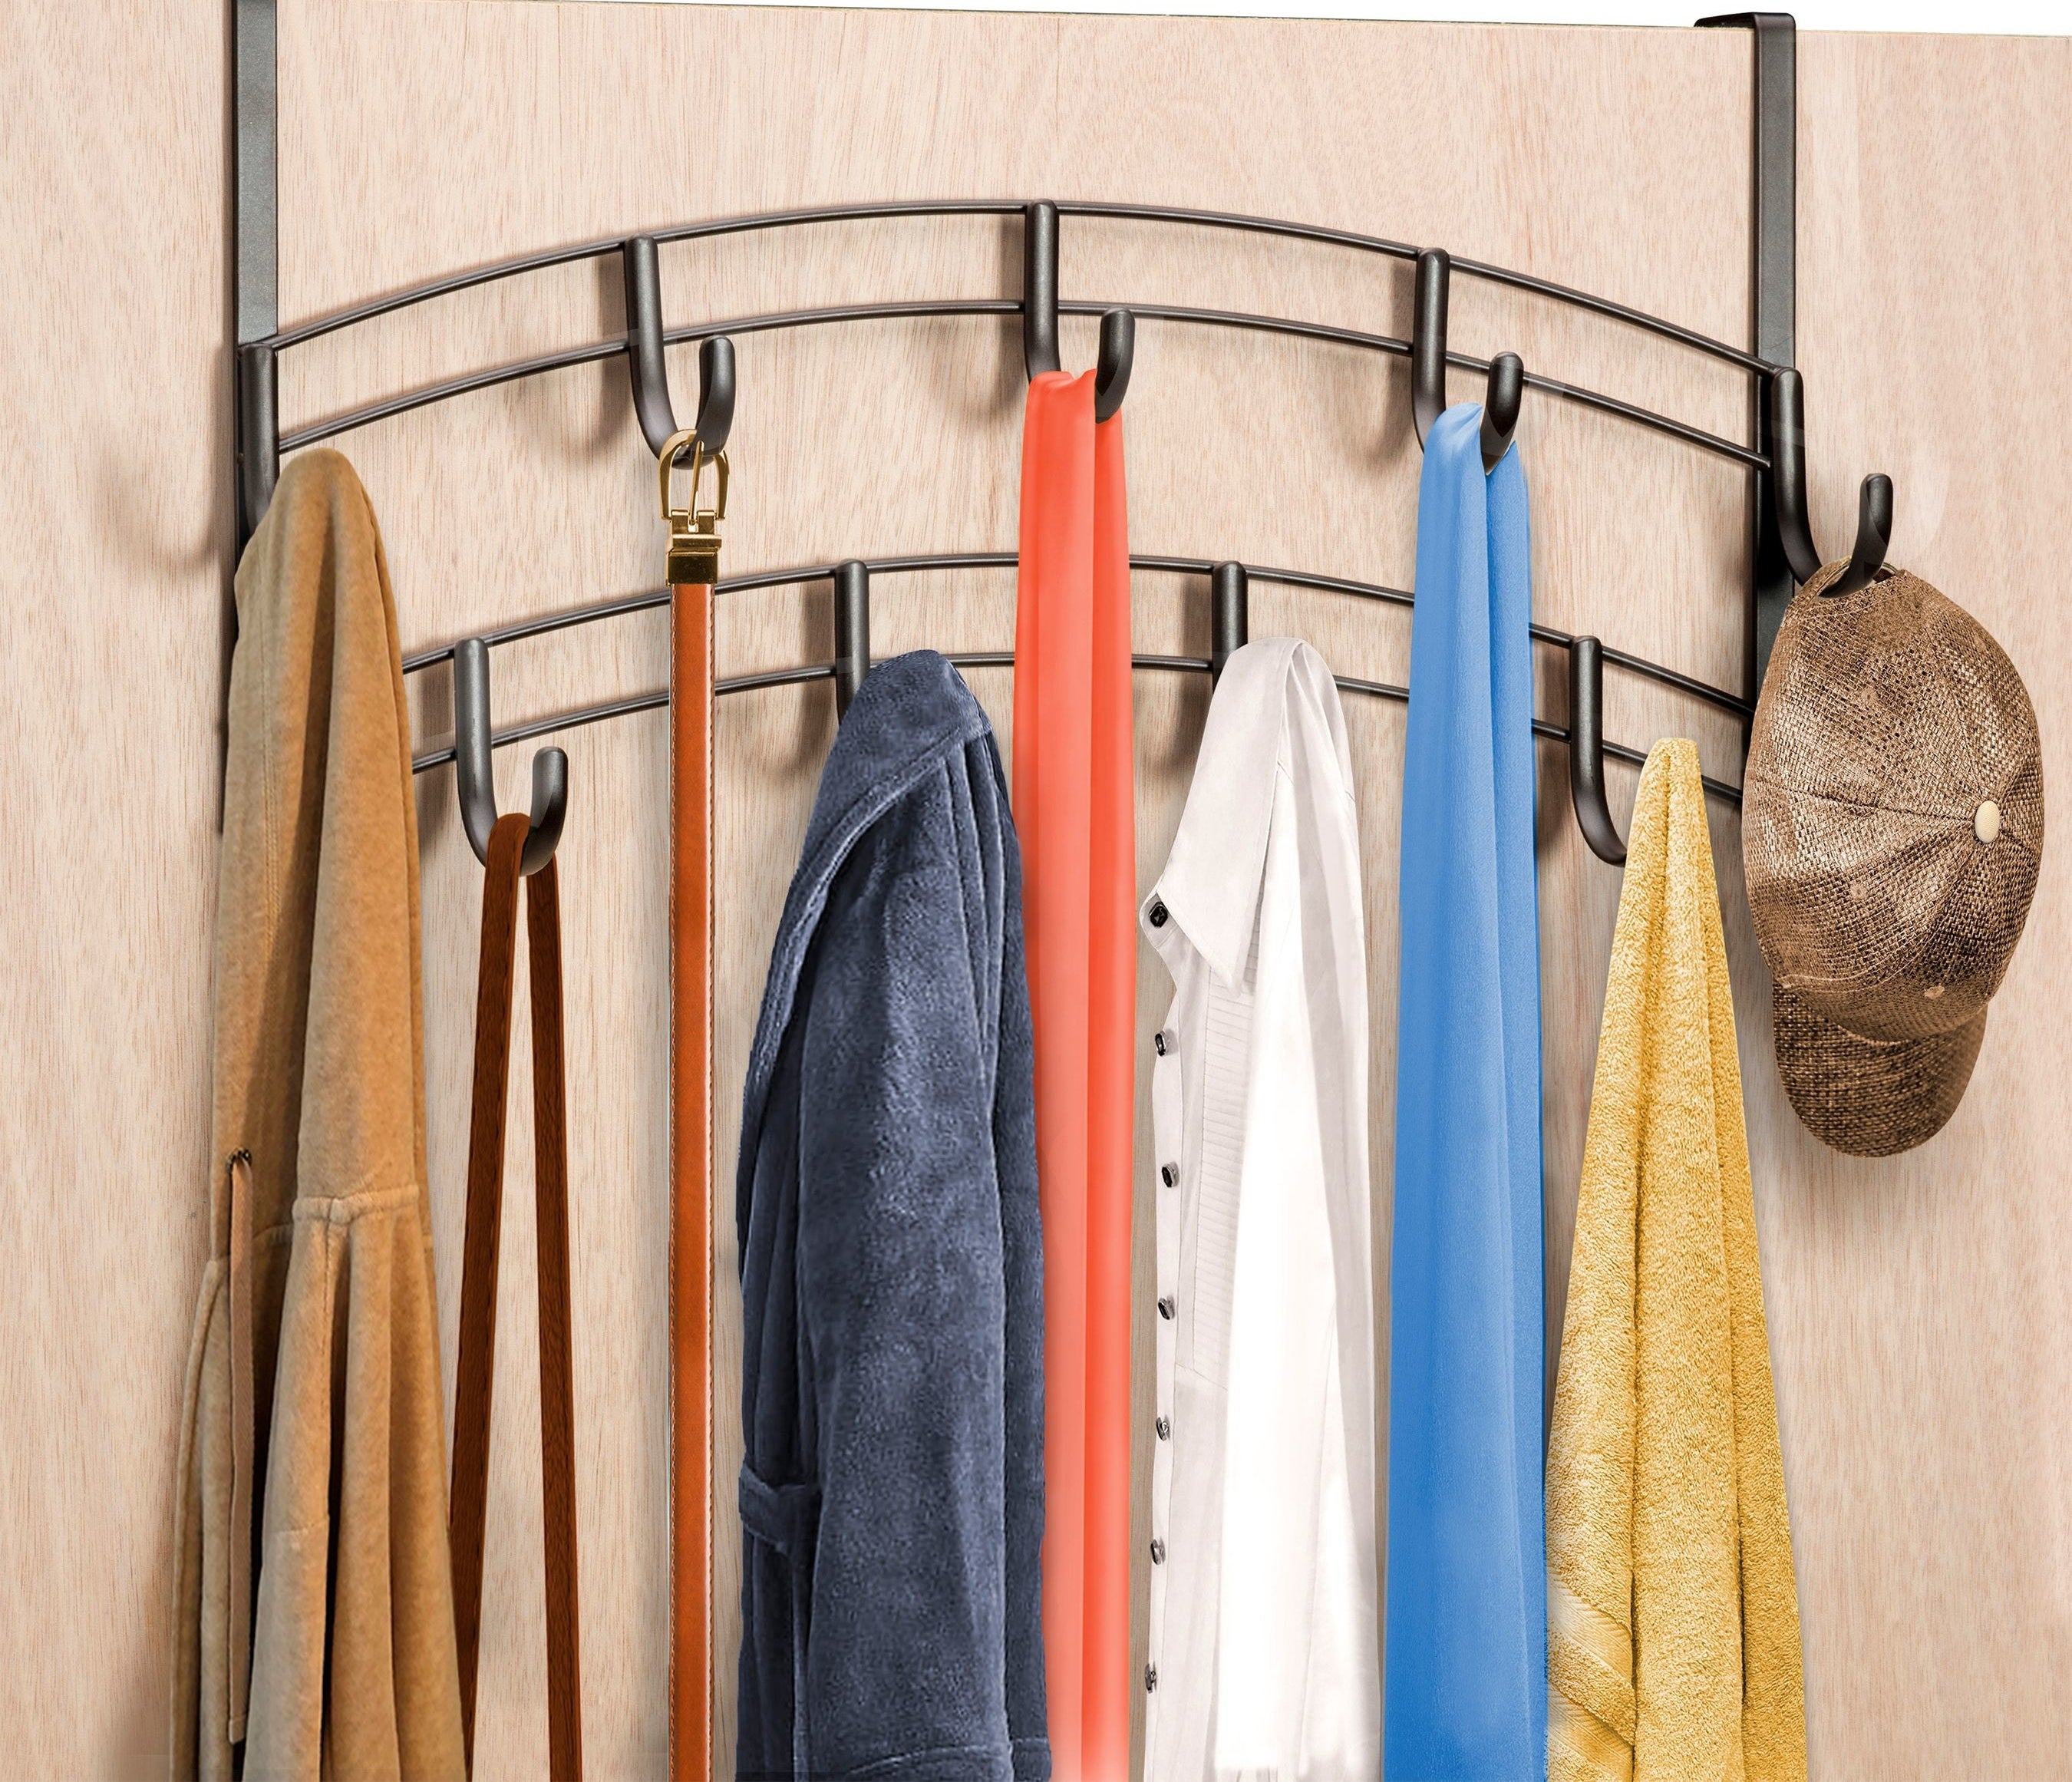 over the door hooks with clothing items